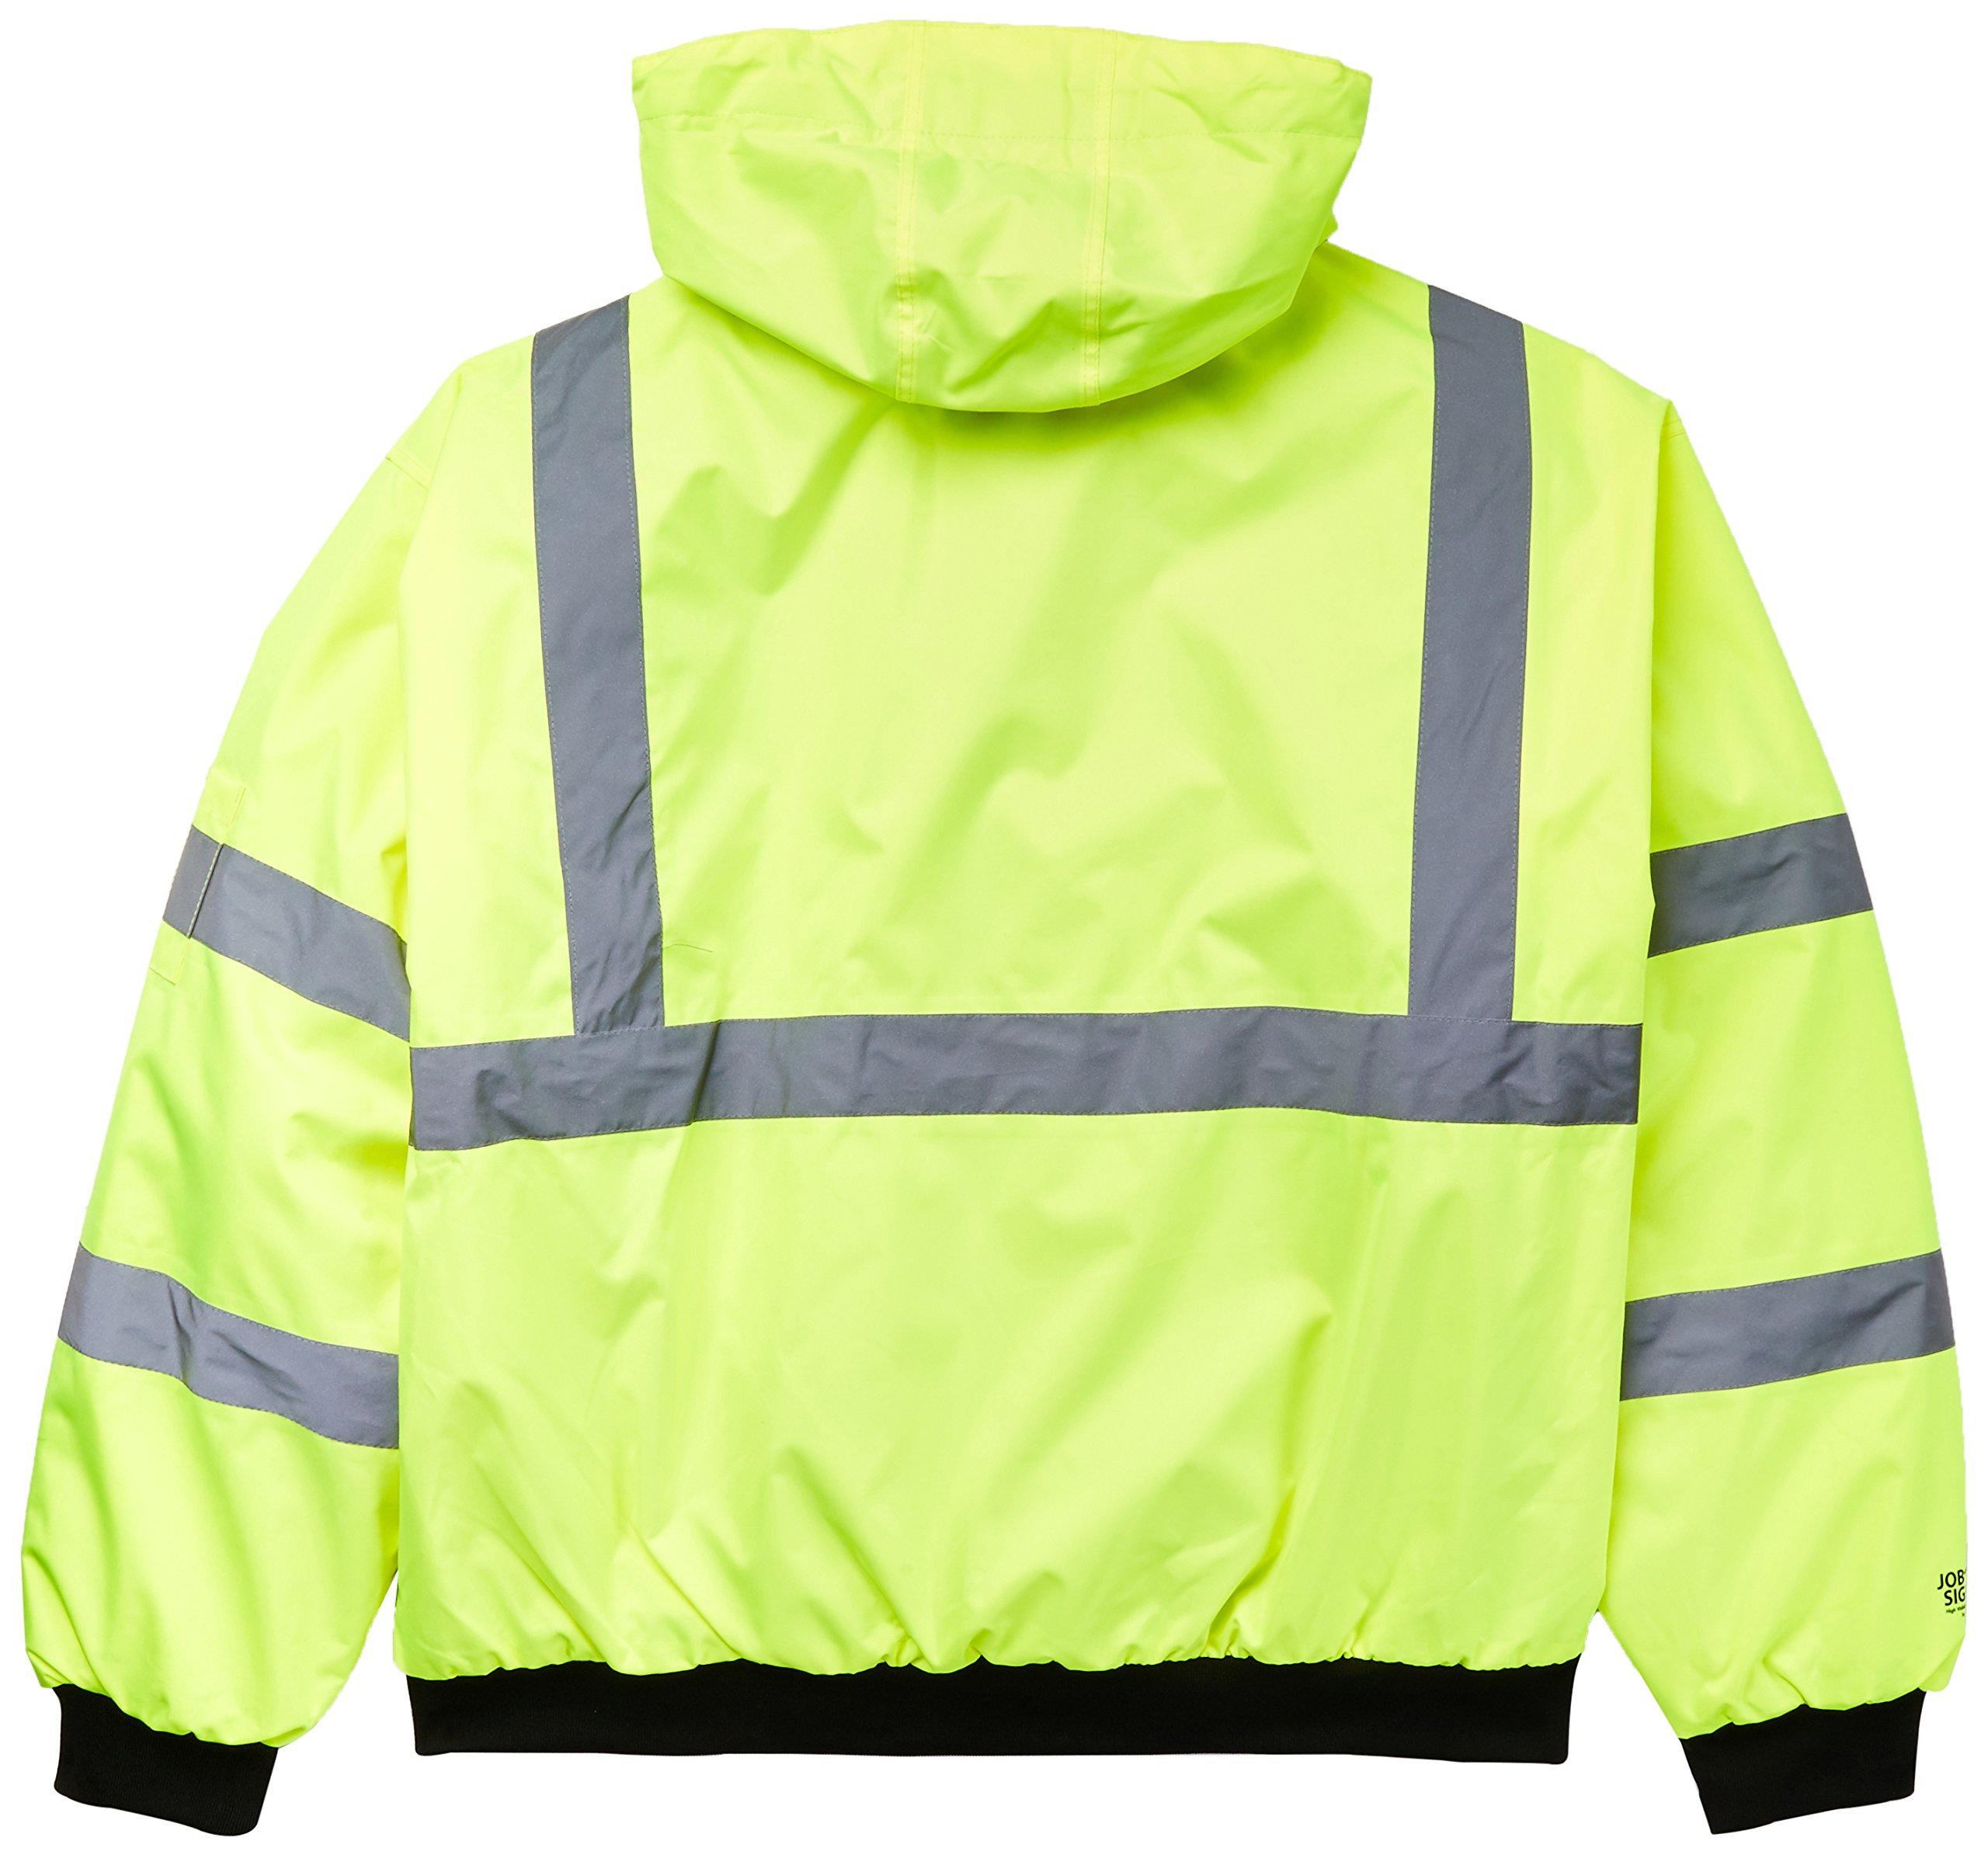 Bomber J26002.XL Jacket with 2'' Silver Reflective Tape, Size X-Large, Fluorescent Yellow/Green/Black by Bomber (Image #2)